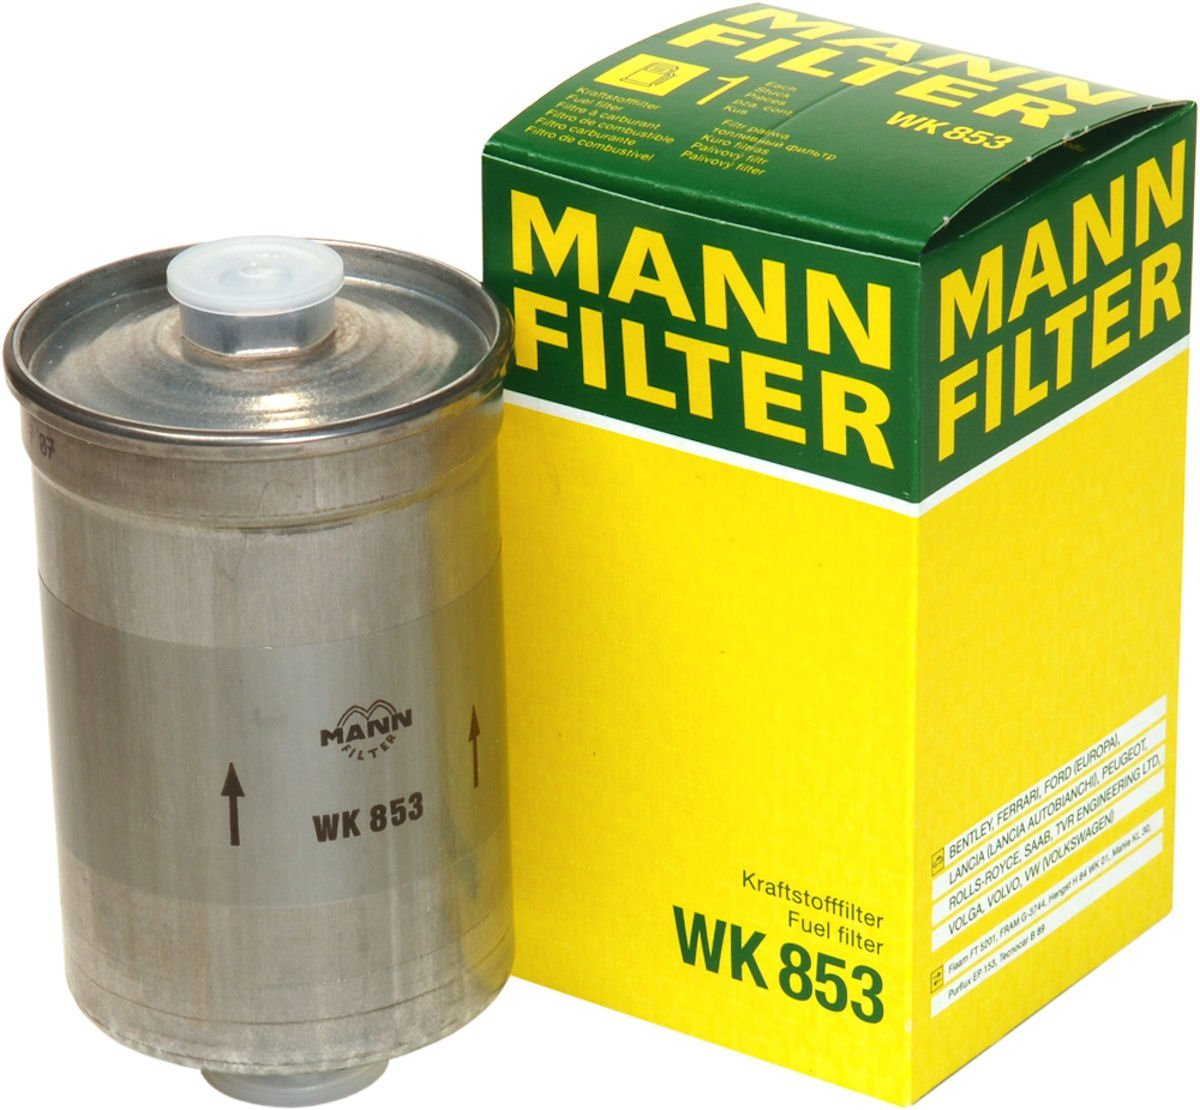 Product Center Autech Filters Daf Filteriveco Filterbenz Filter King Fuel Mann Wk853